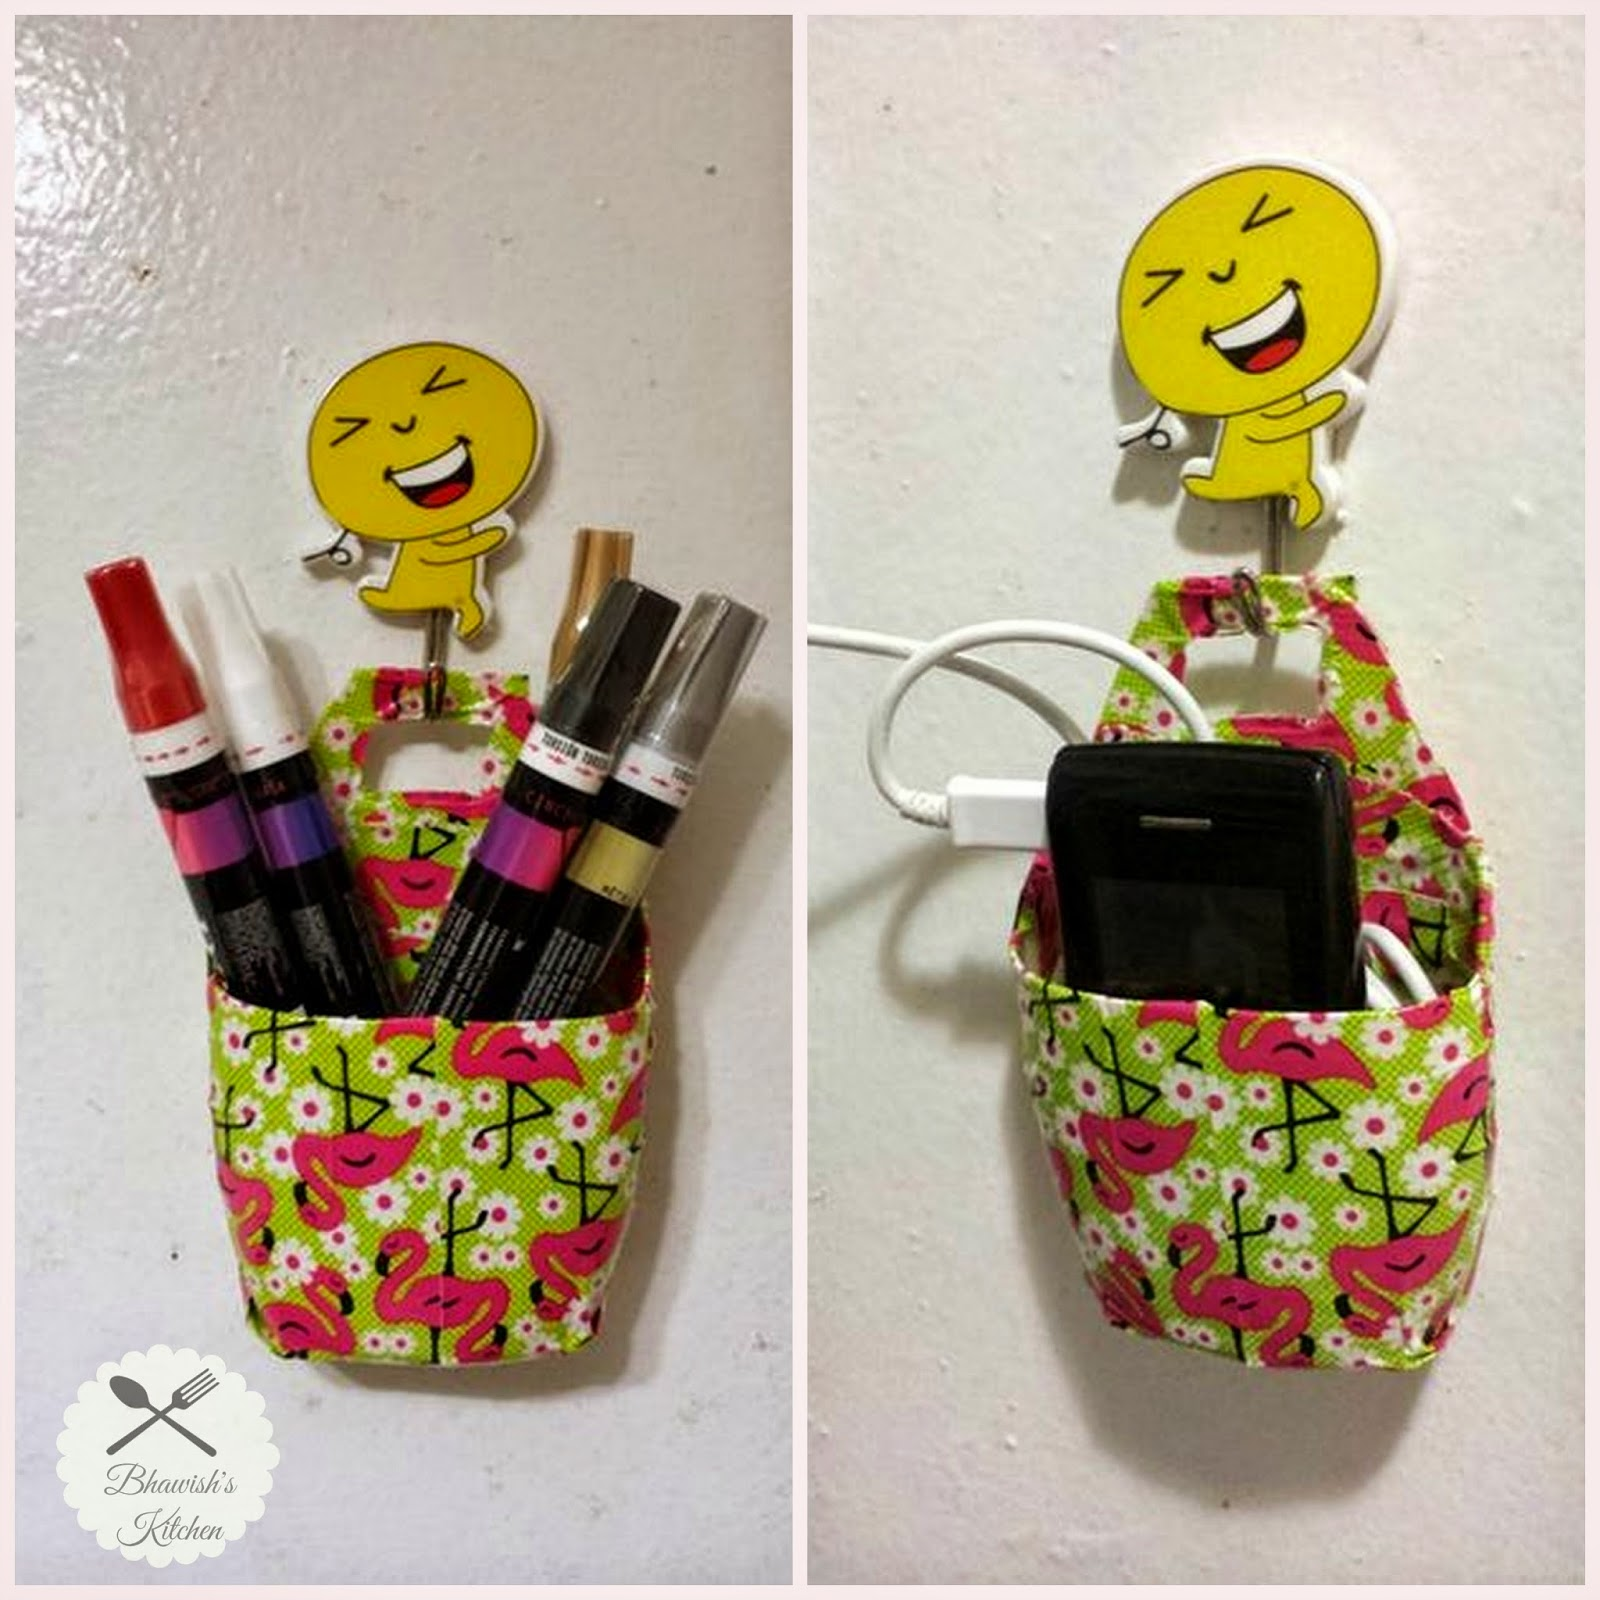 Multi-purpose holder from old lotion/shampoo bottles